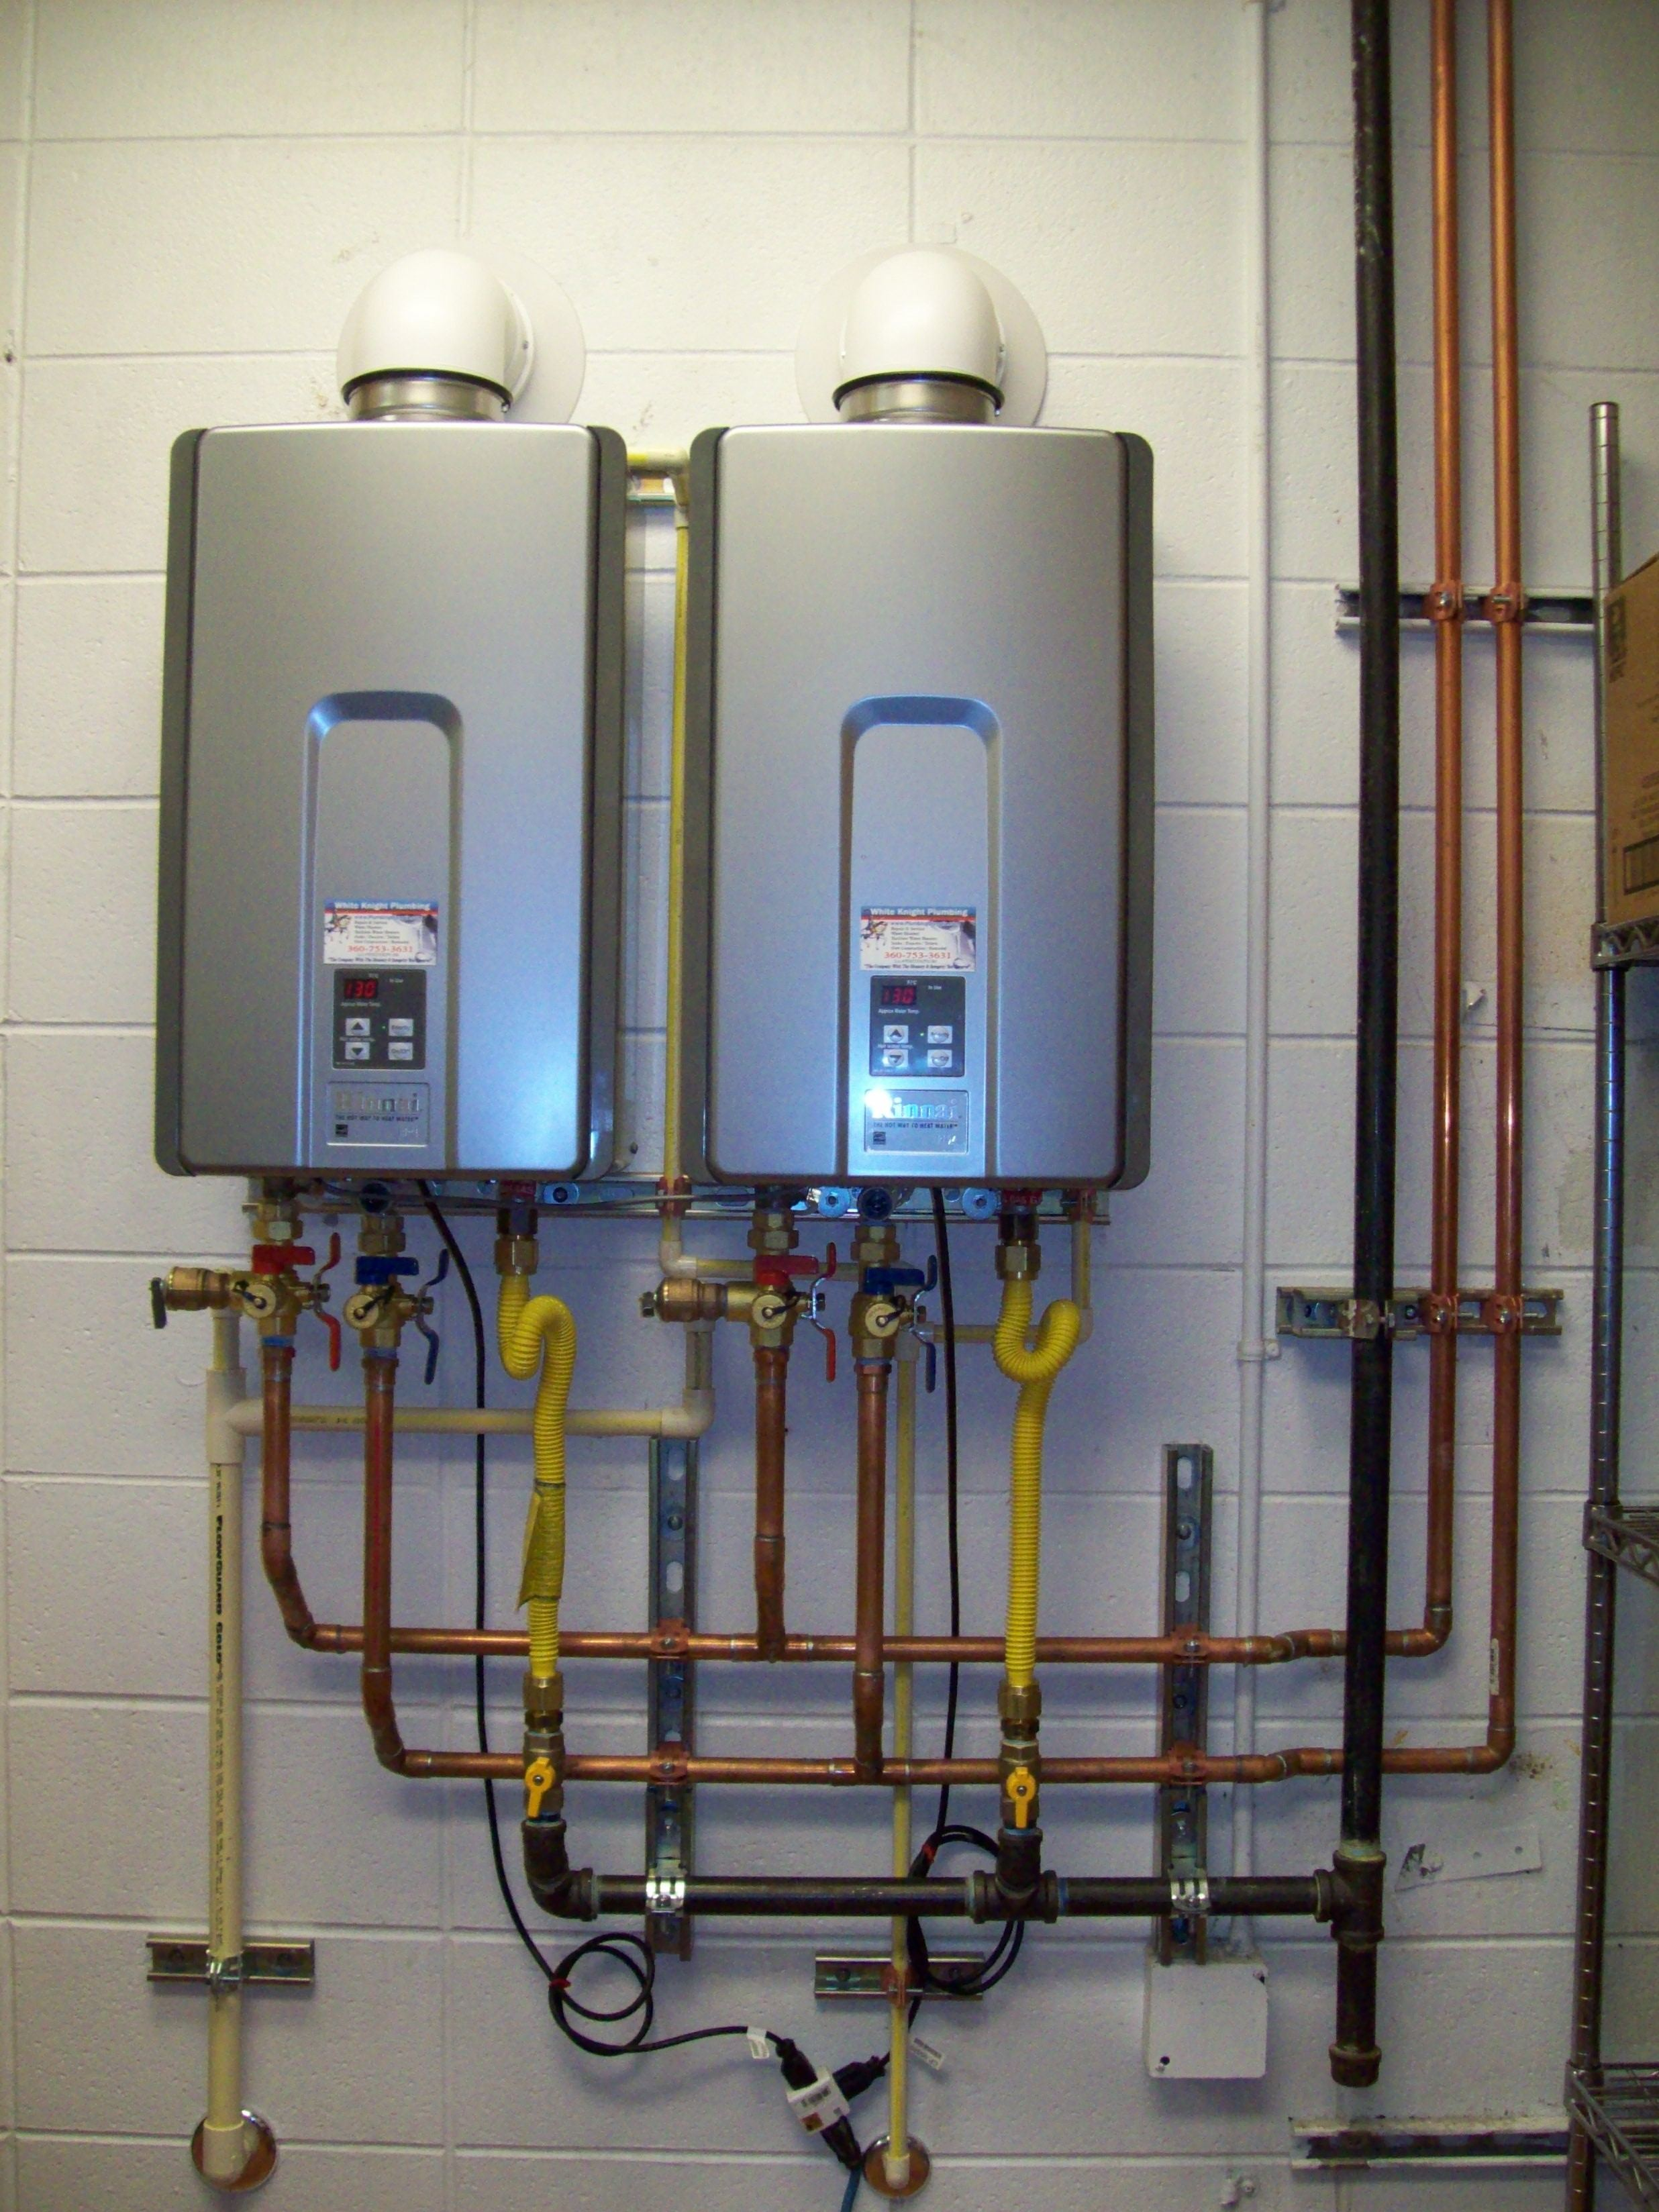 Instant Hot Water Heater Home : Things to know about tankless water heaters the green